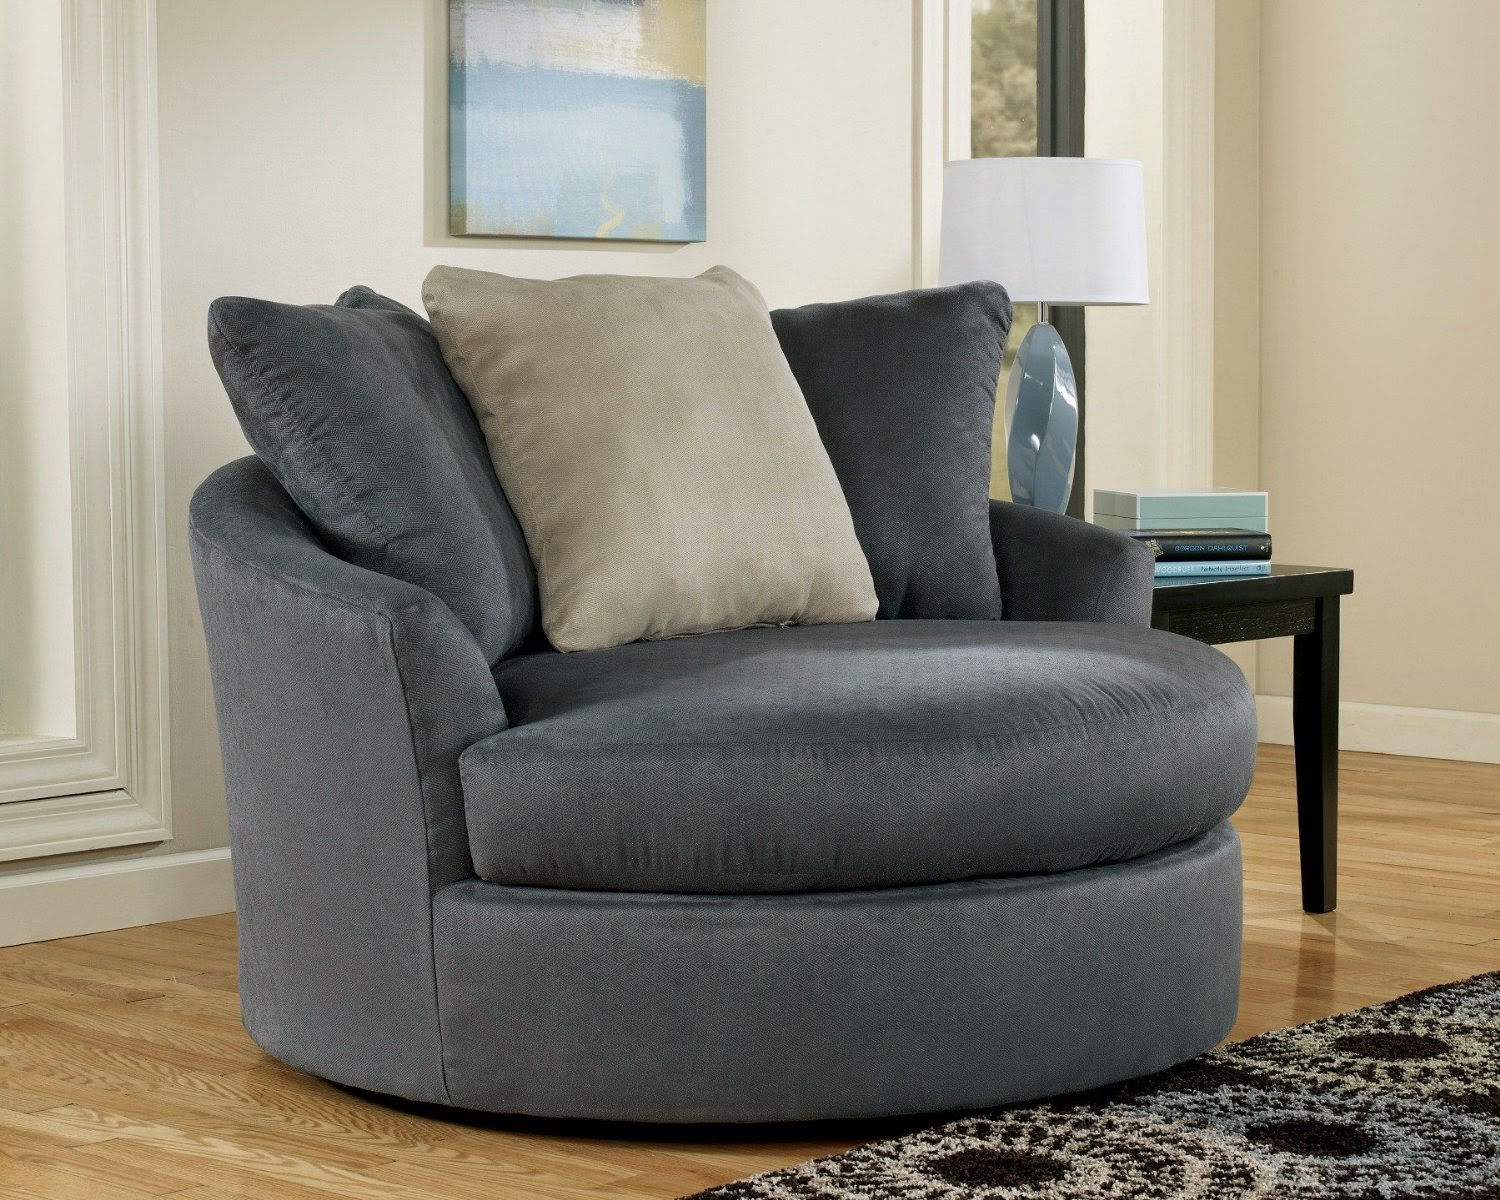 Oversized Living Room Chair Cuddle Couch Cuddle Couch For Sale